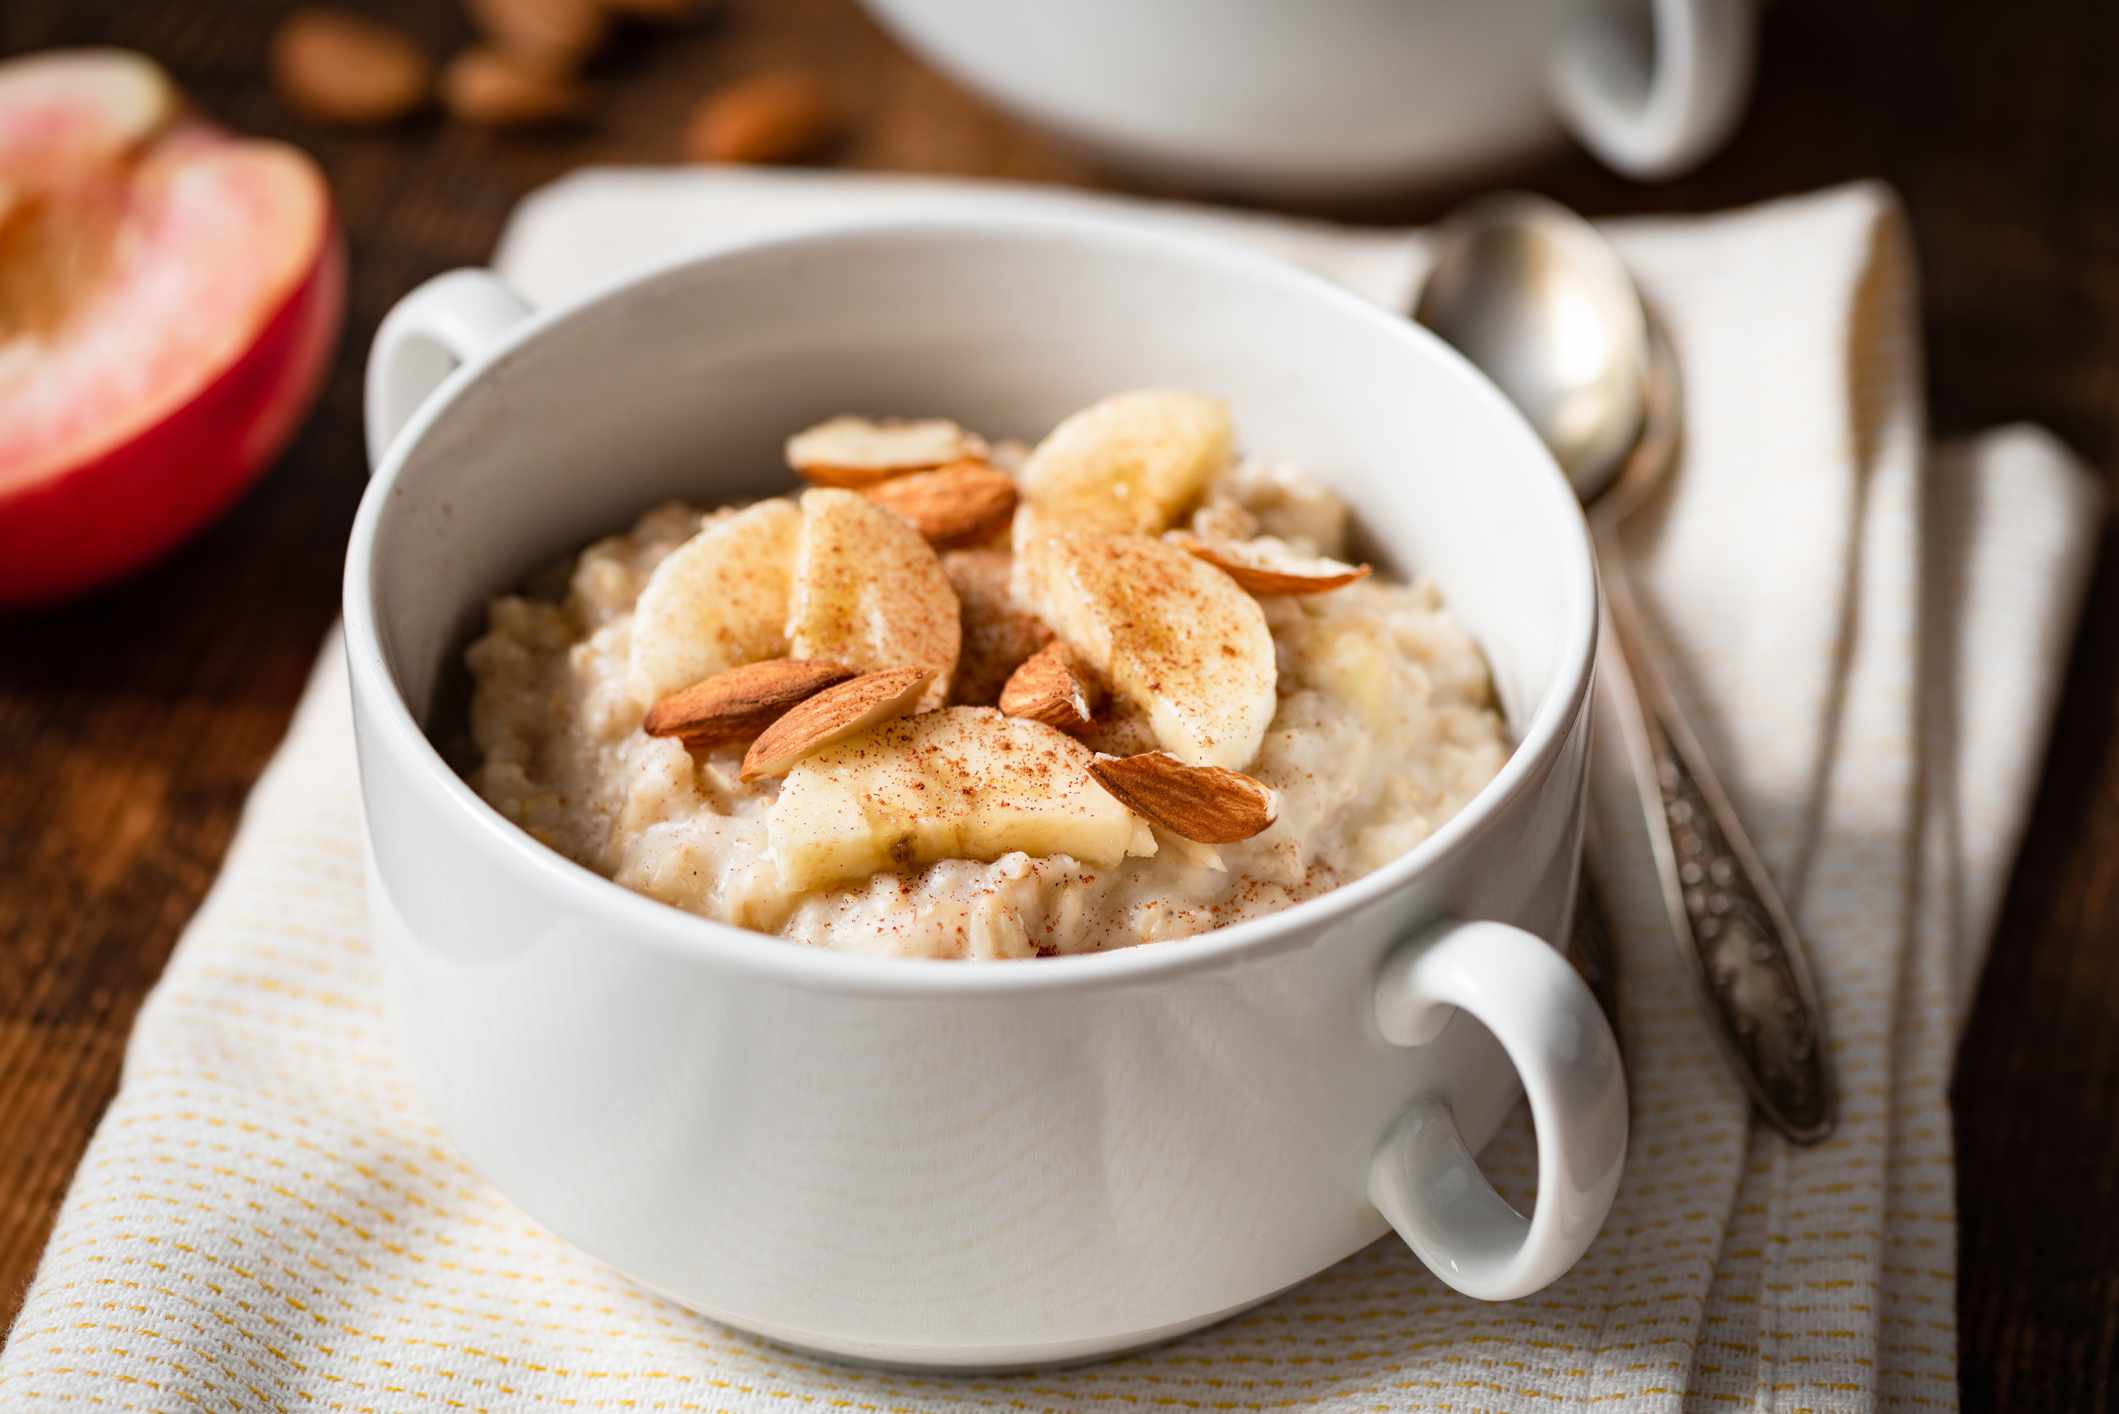 Crock pot apple cinnamon oatmeal topped with fruit and nuts